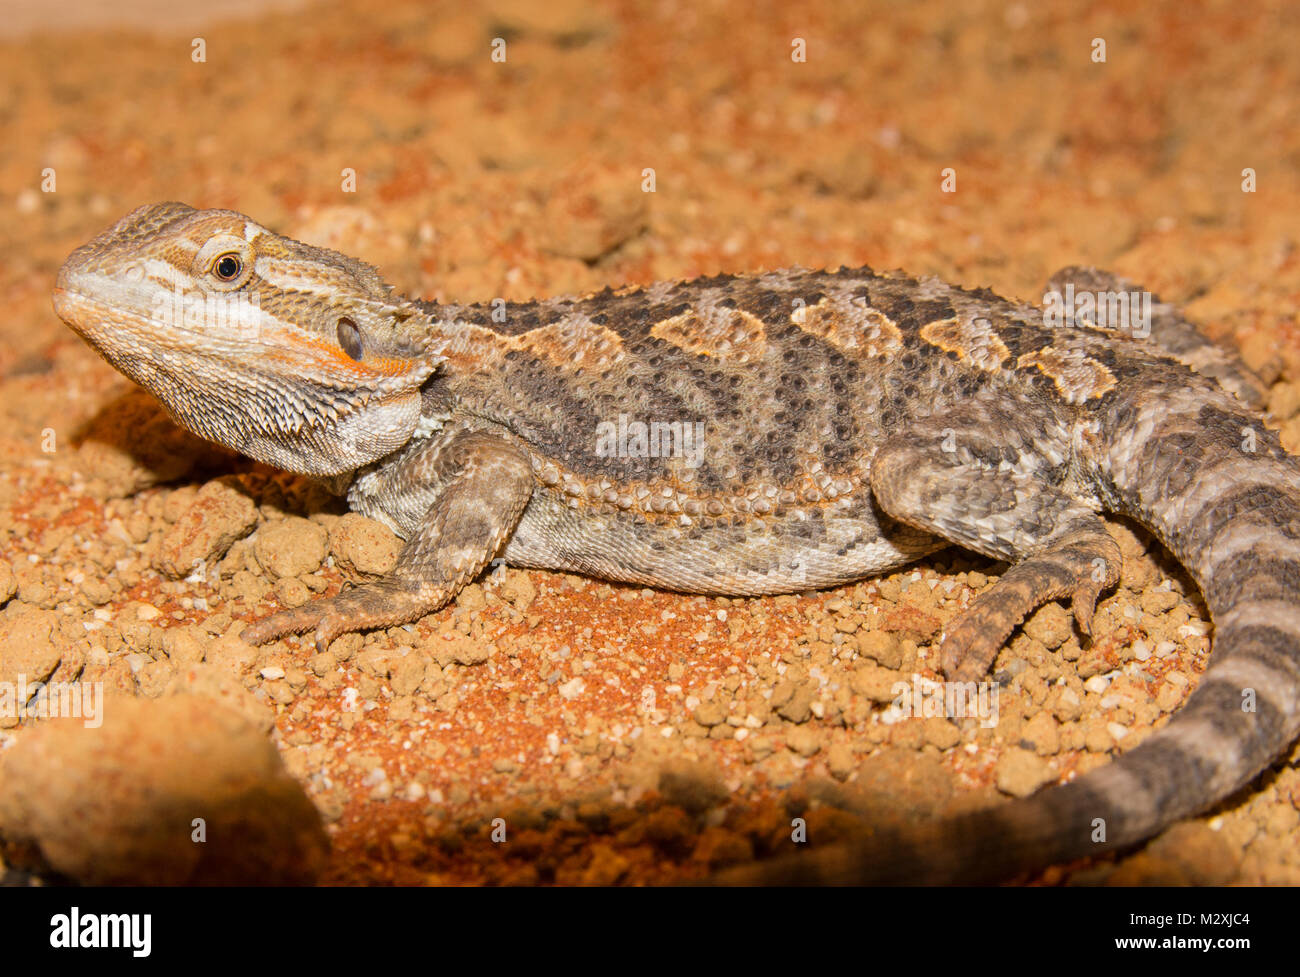 Male Bearded Dragon Pogona species on an orange sand substrate nice looking male of this popular reptile pet. - Stock Image